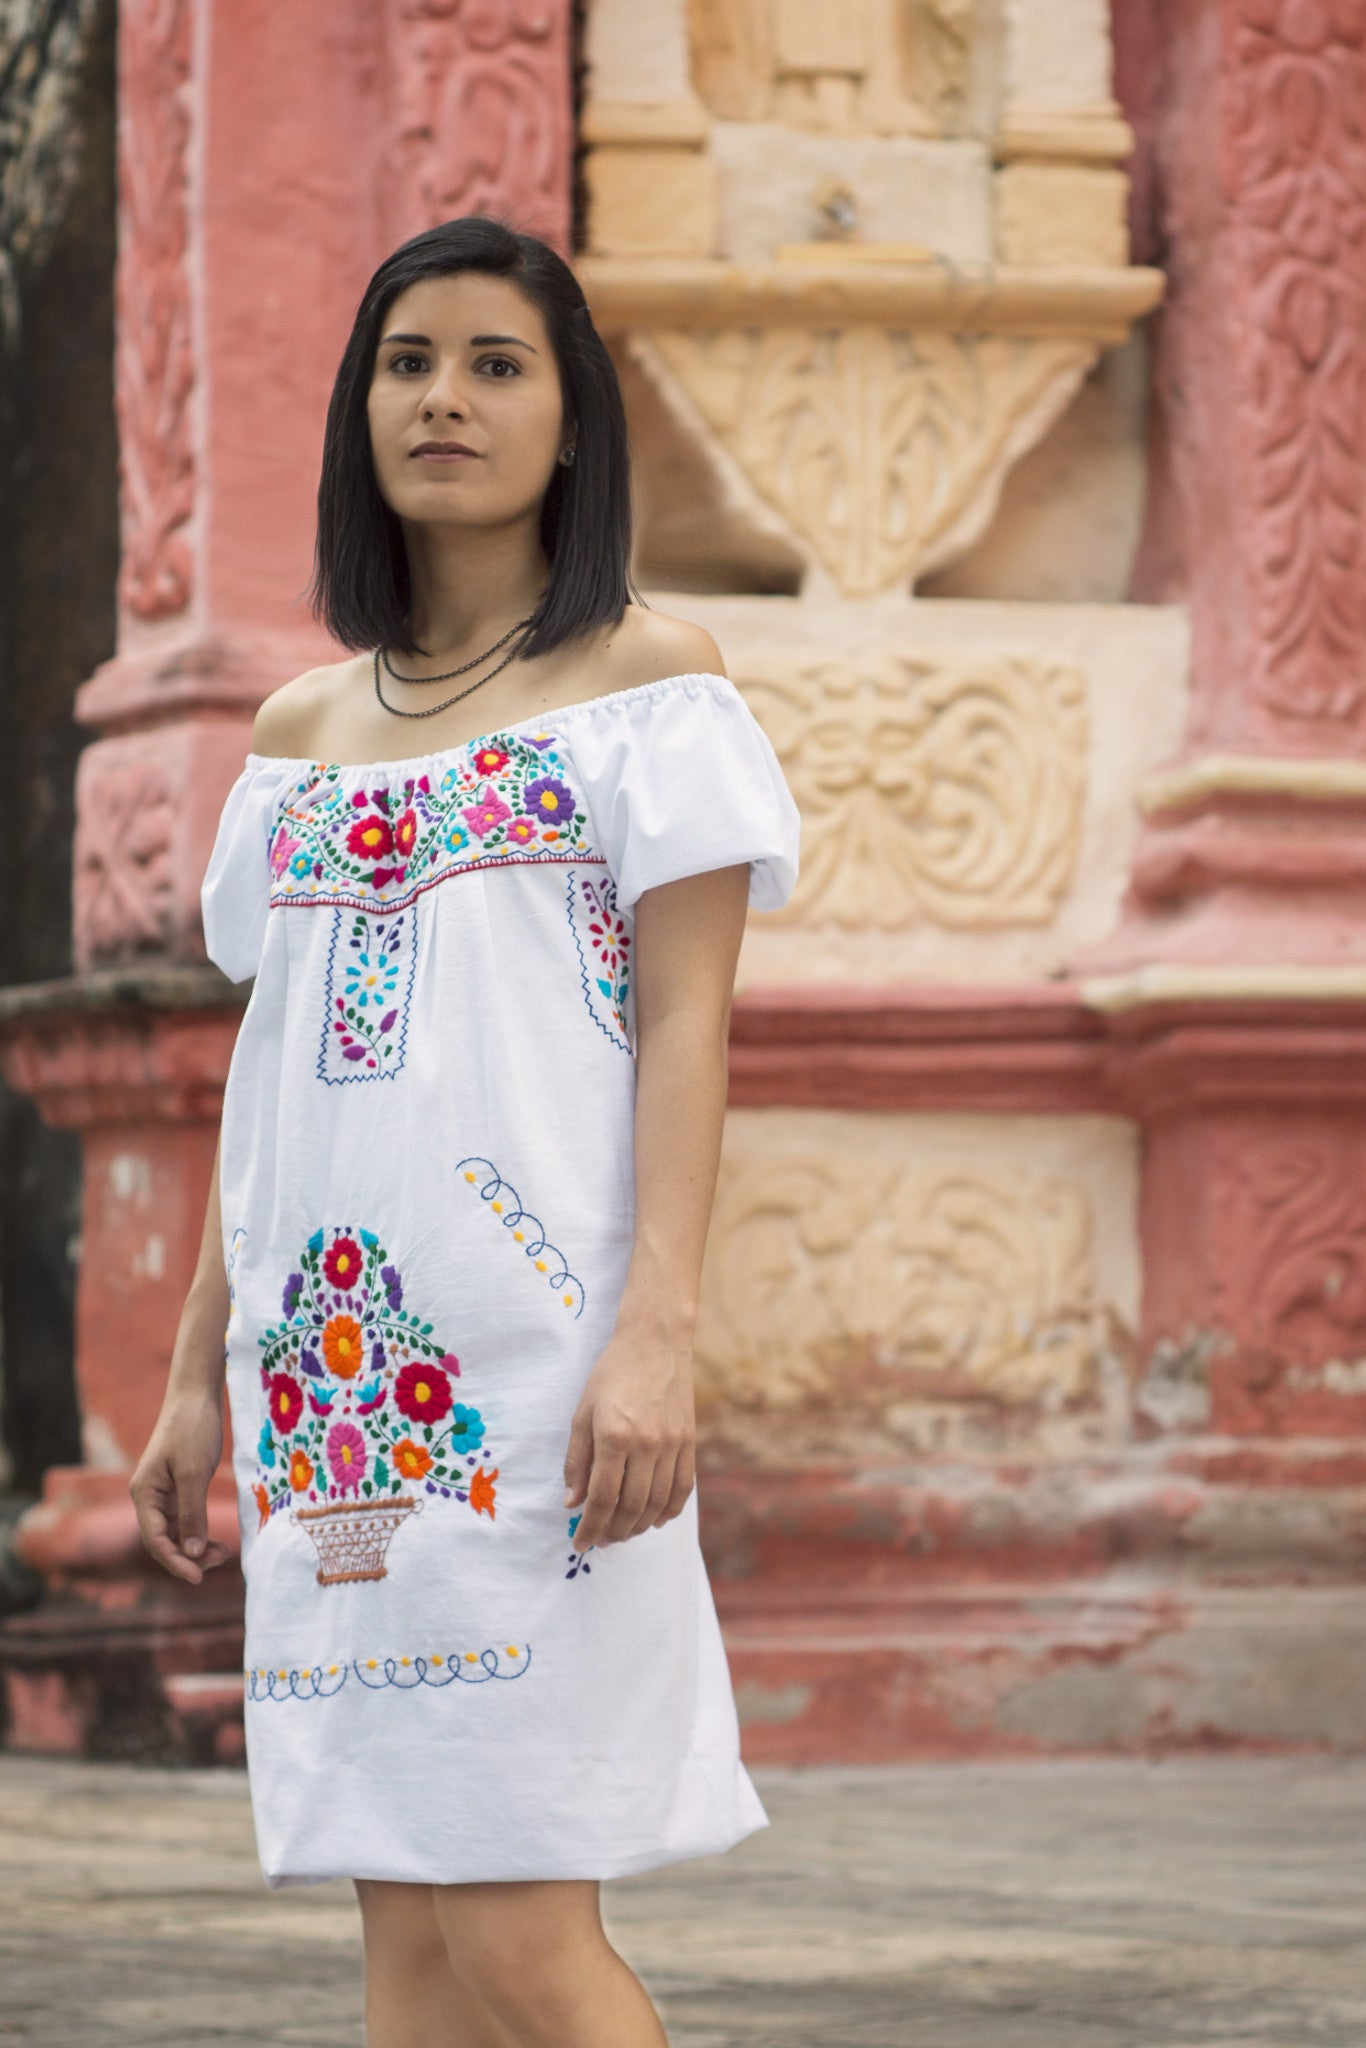 Mexican off the shoulder mini dress  - White hand embroidered manta